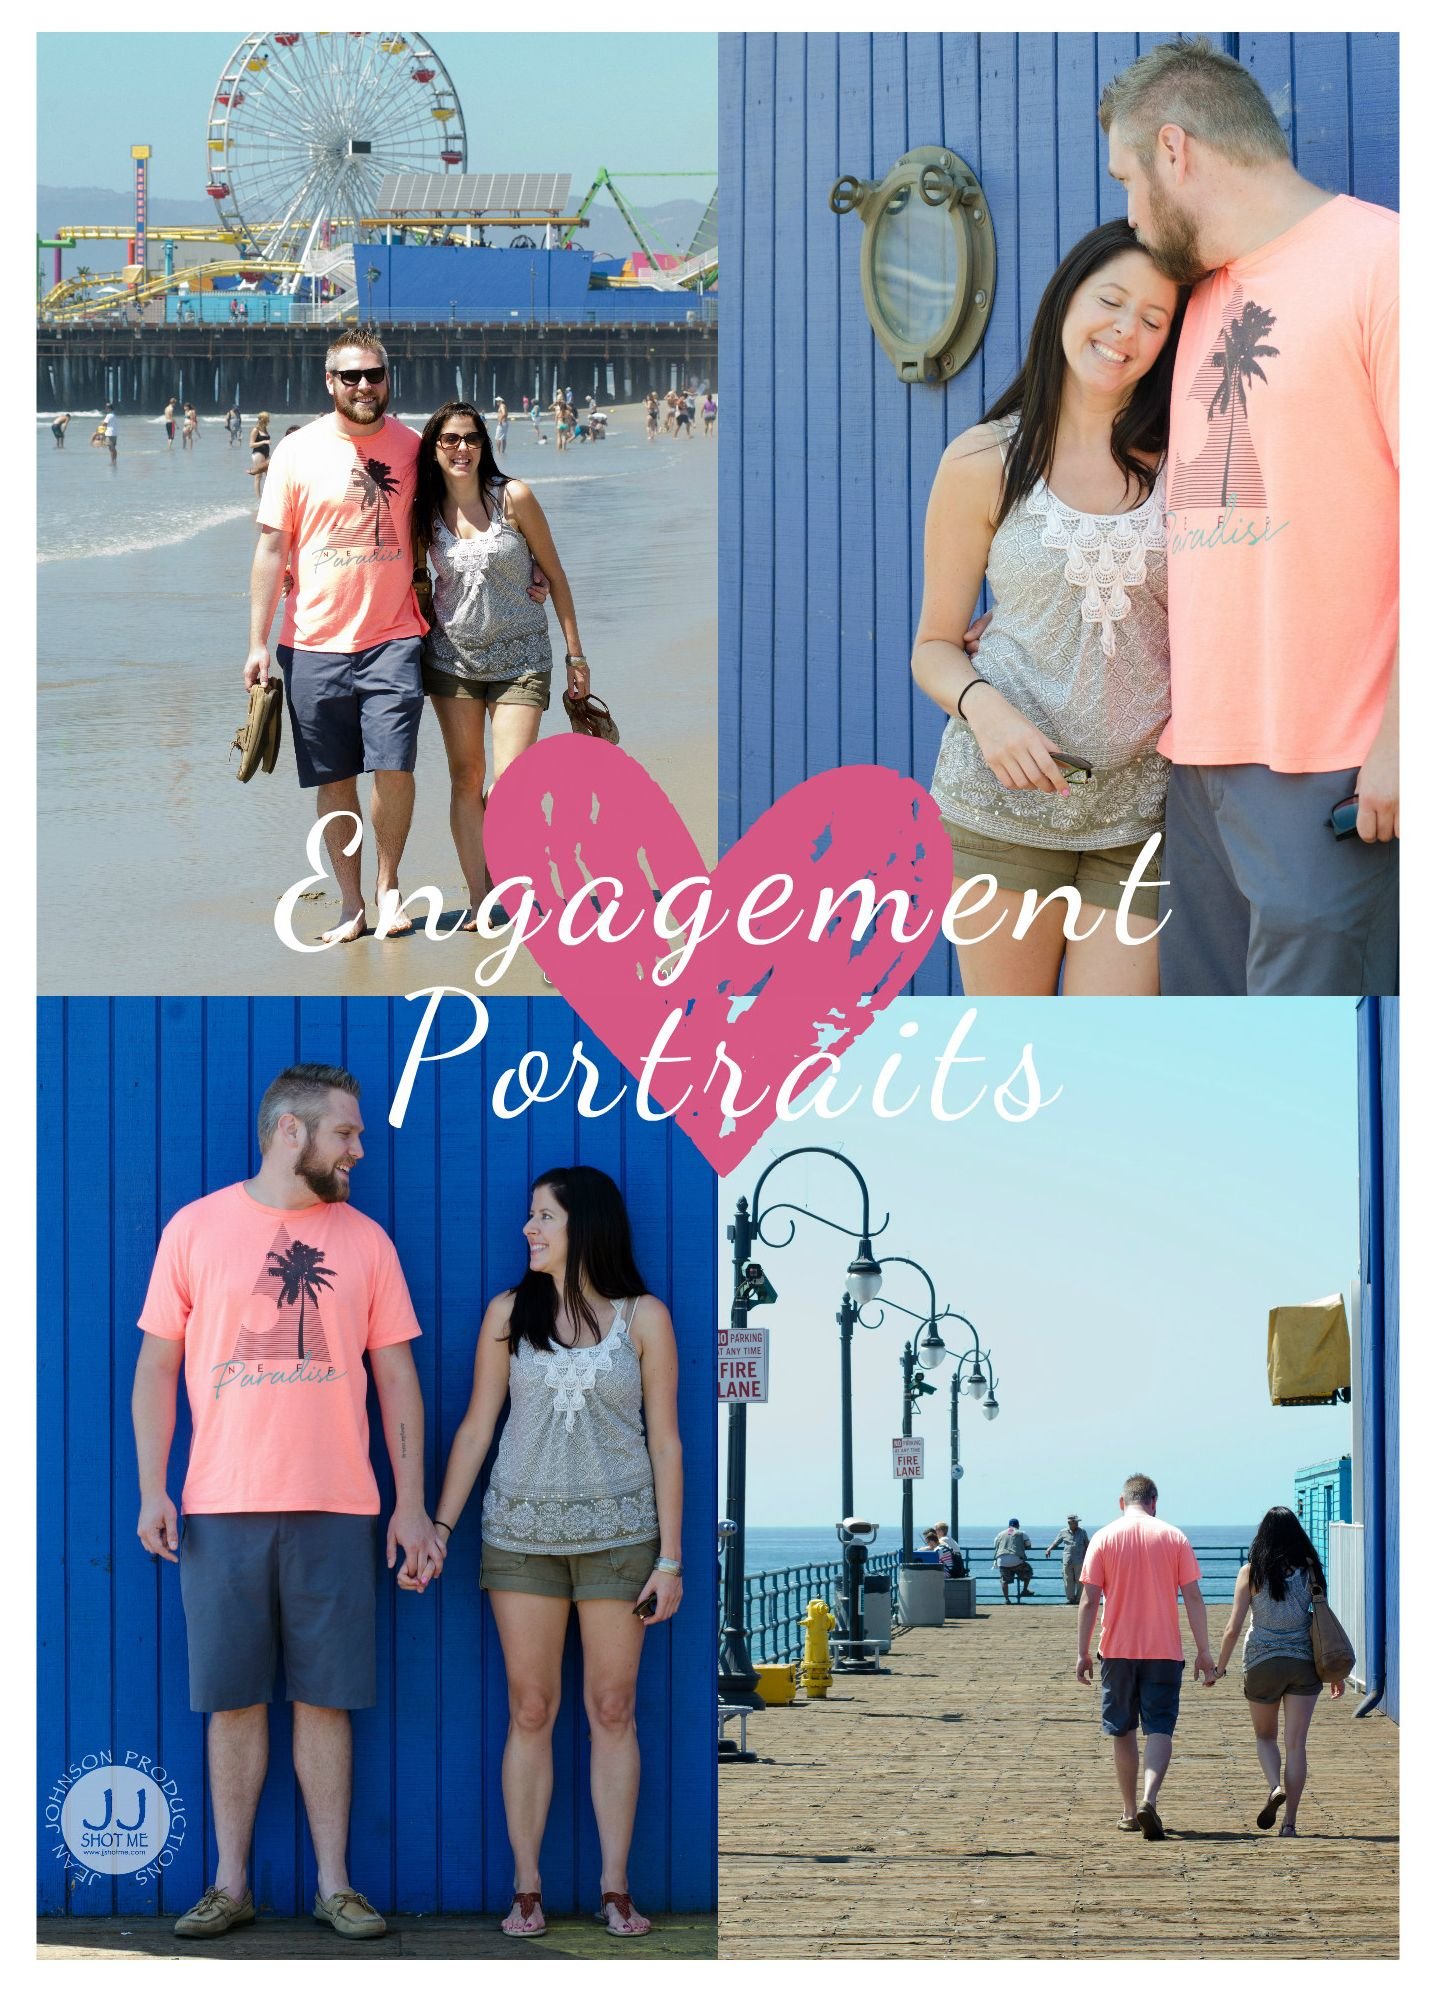 Engagement Portraits | Summer time photography | Boardwalk portraits | Jean Johnson Productions // www.jjshotme.com